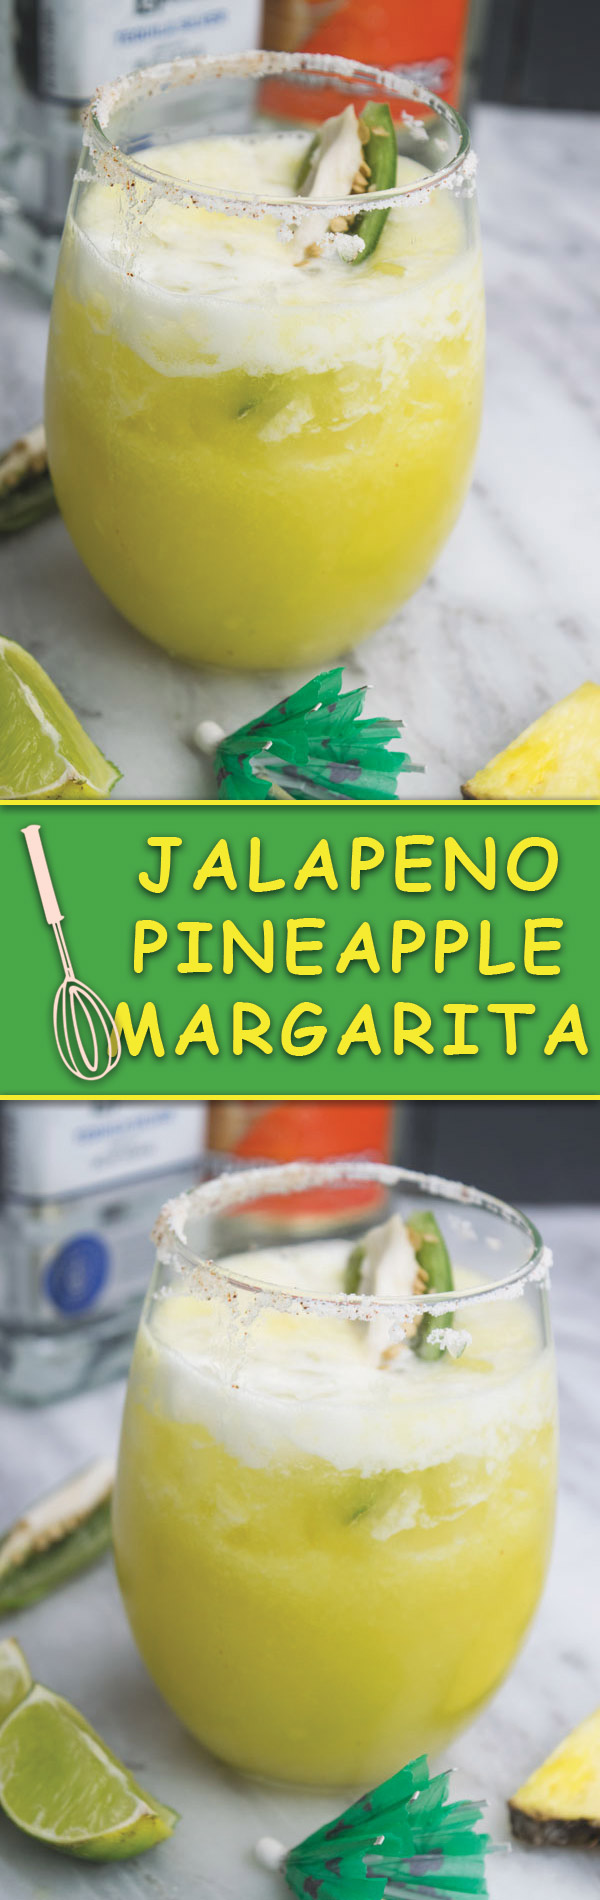 Jalapeno pineapple margarita - Jalapeno infused tequila, fresh pineapple, all blended into this fun margarita that is great for relaxing or for gatherings! Just 10 mins is what you need!